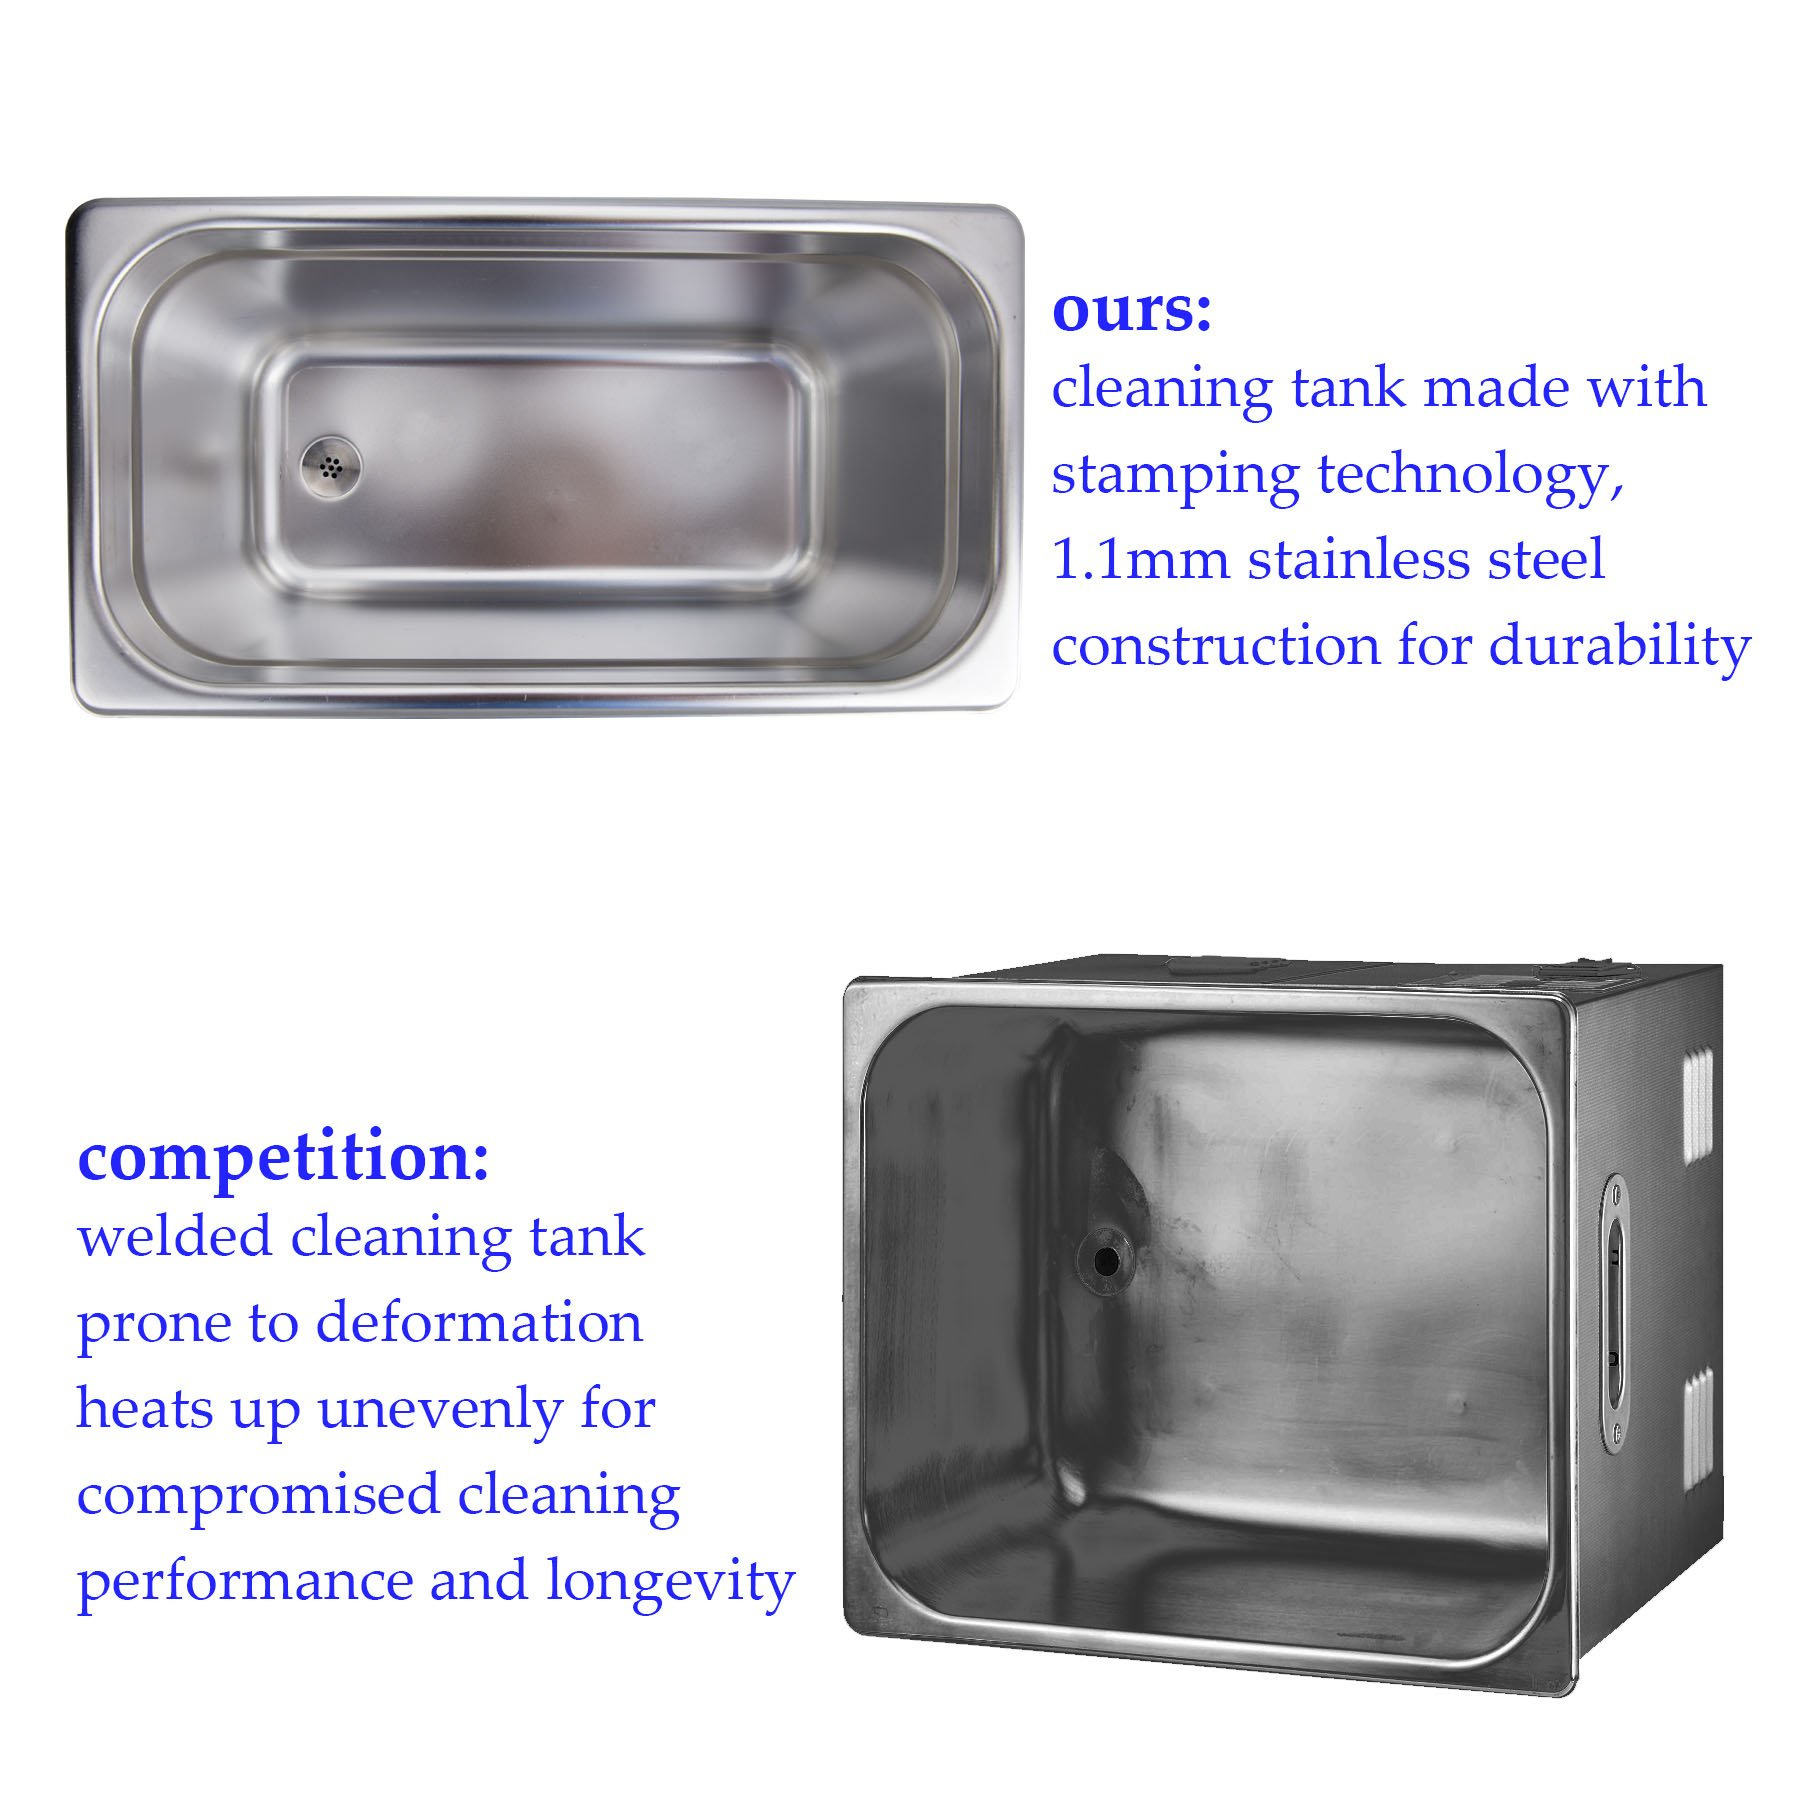 CO-Z 6L Stainless Steel Professional Ultrasonic Jewelry Denture Cleaner with Digital Timer & Heater by CO-Z (Image #4)